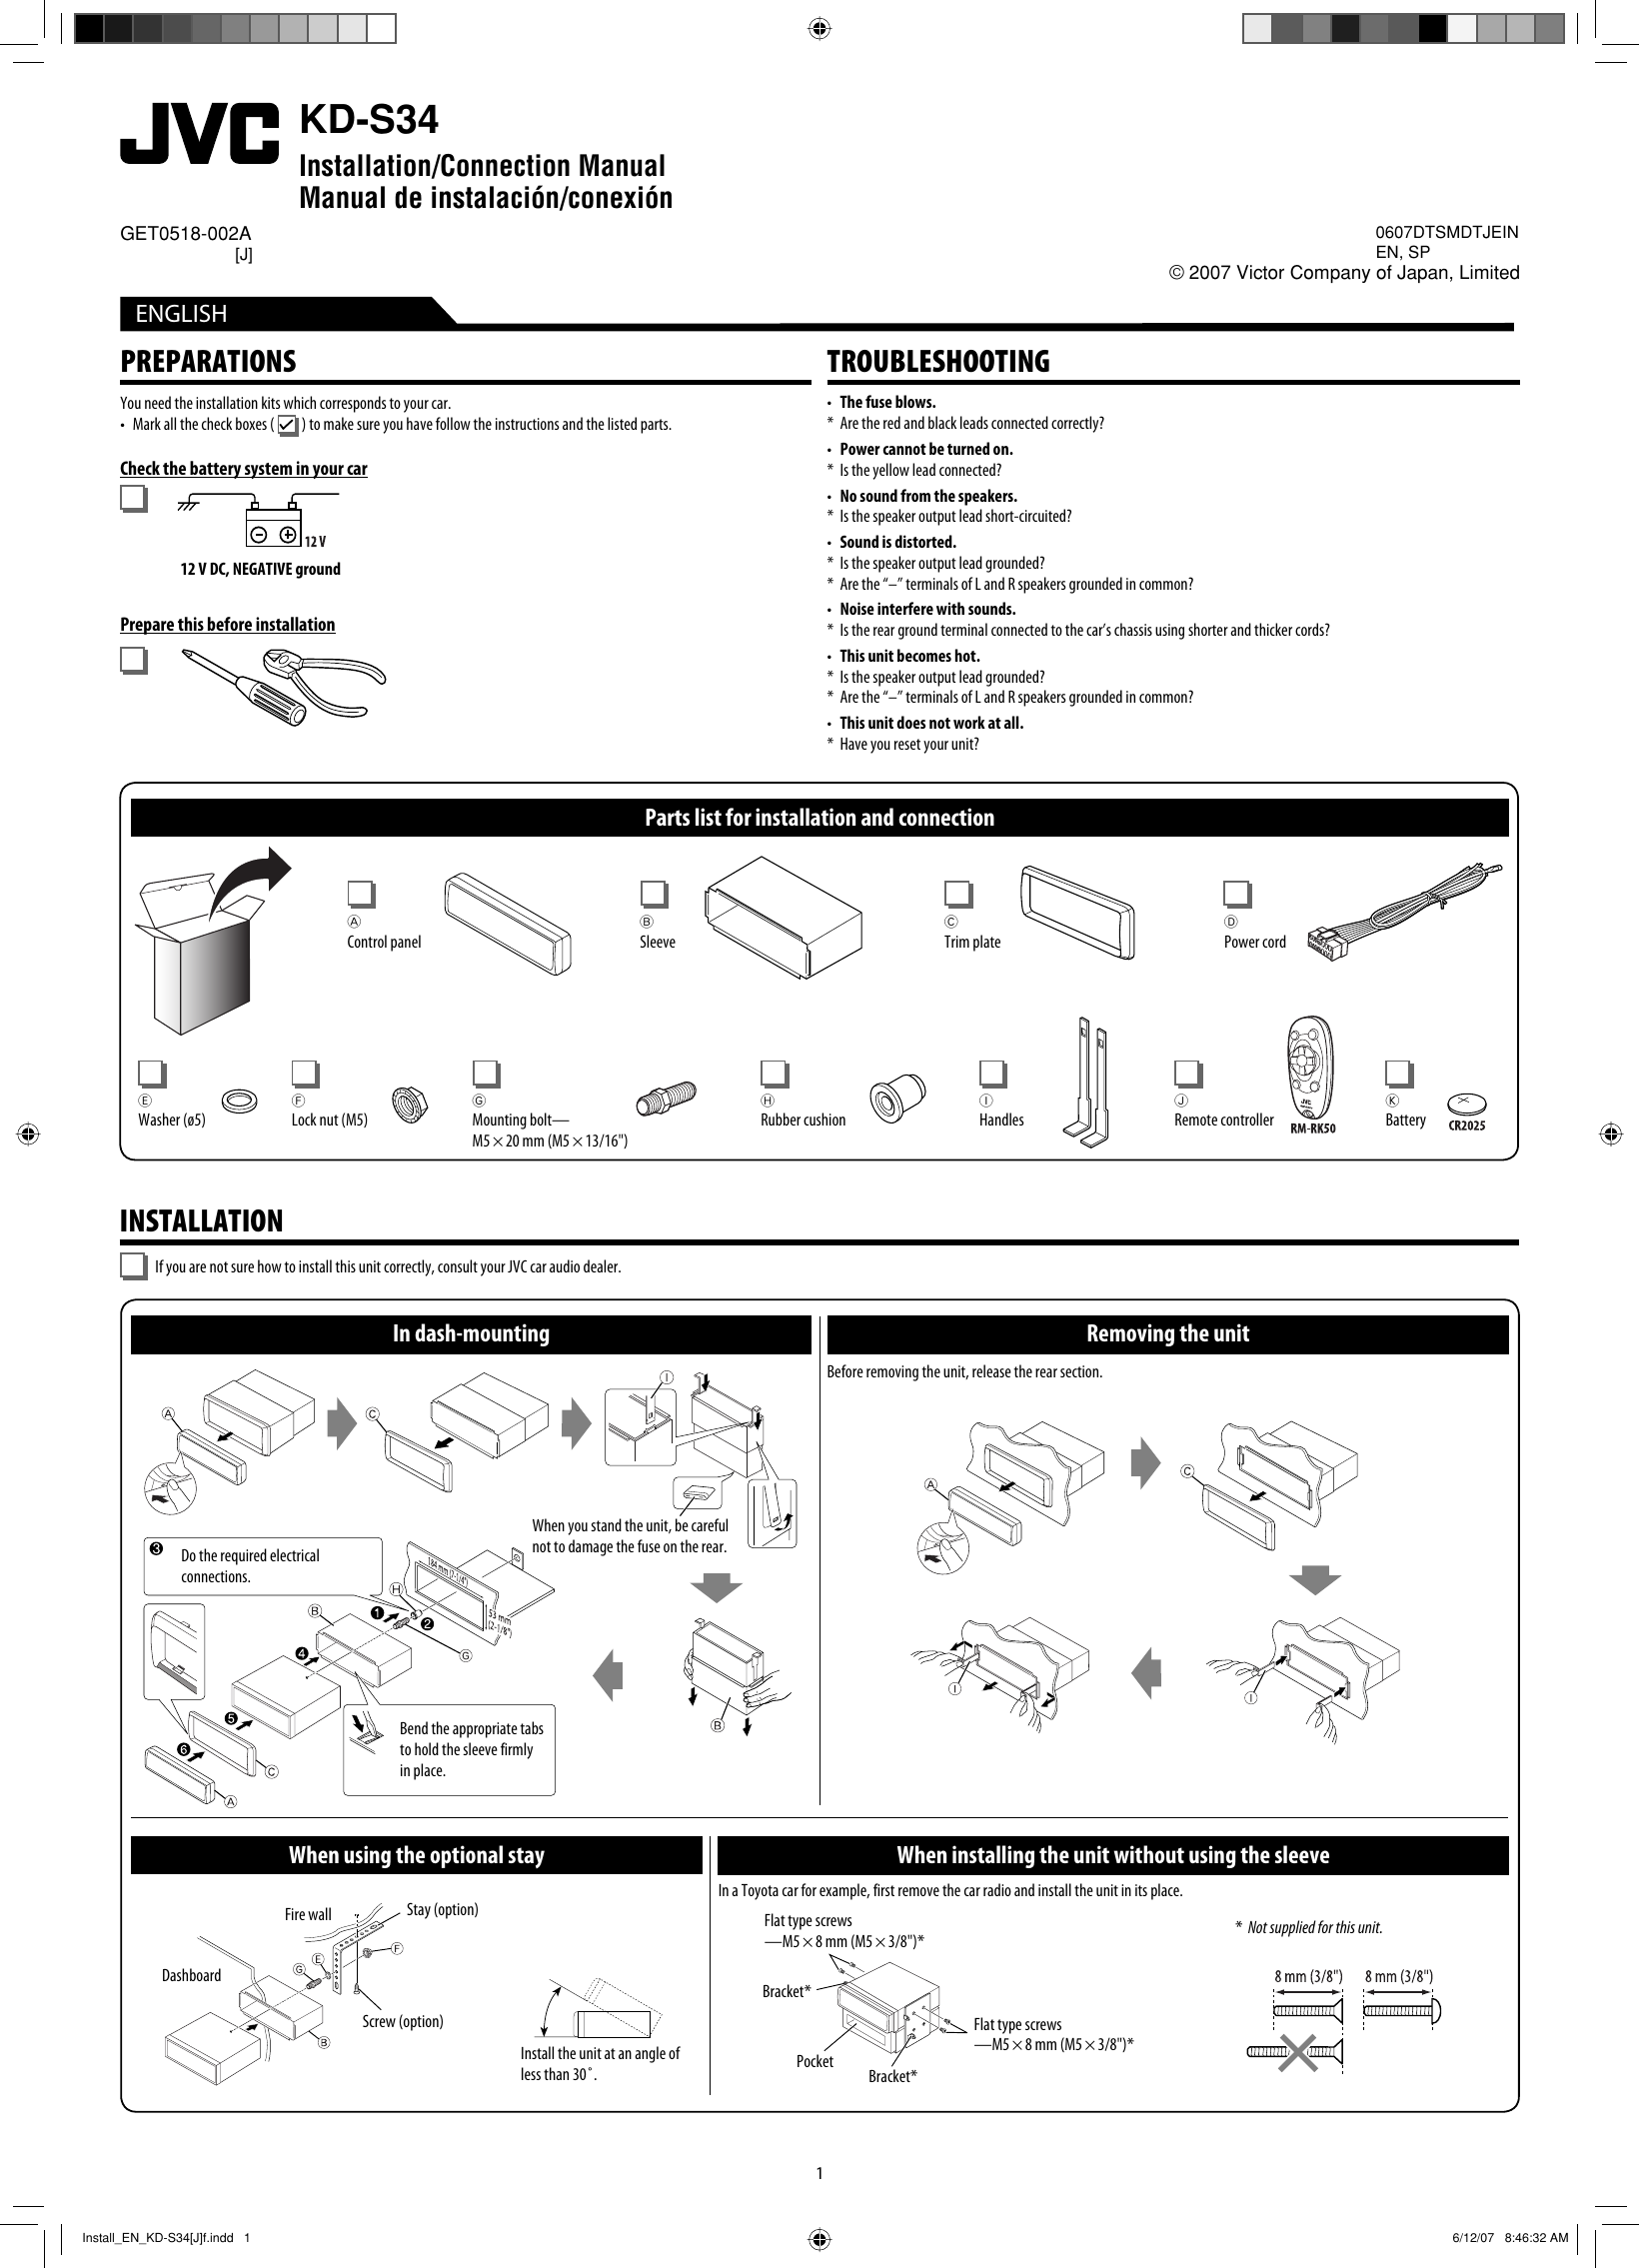 Jvc Kd S37 Car Stereo Wiring Diagram Electrical Diagrams Harness Colors Manual Various Owner Guide U2022 Color Codes